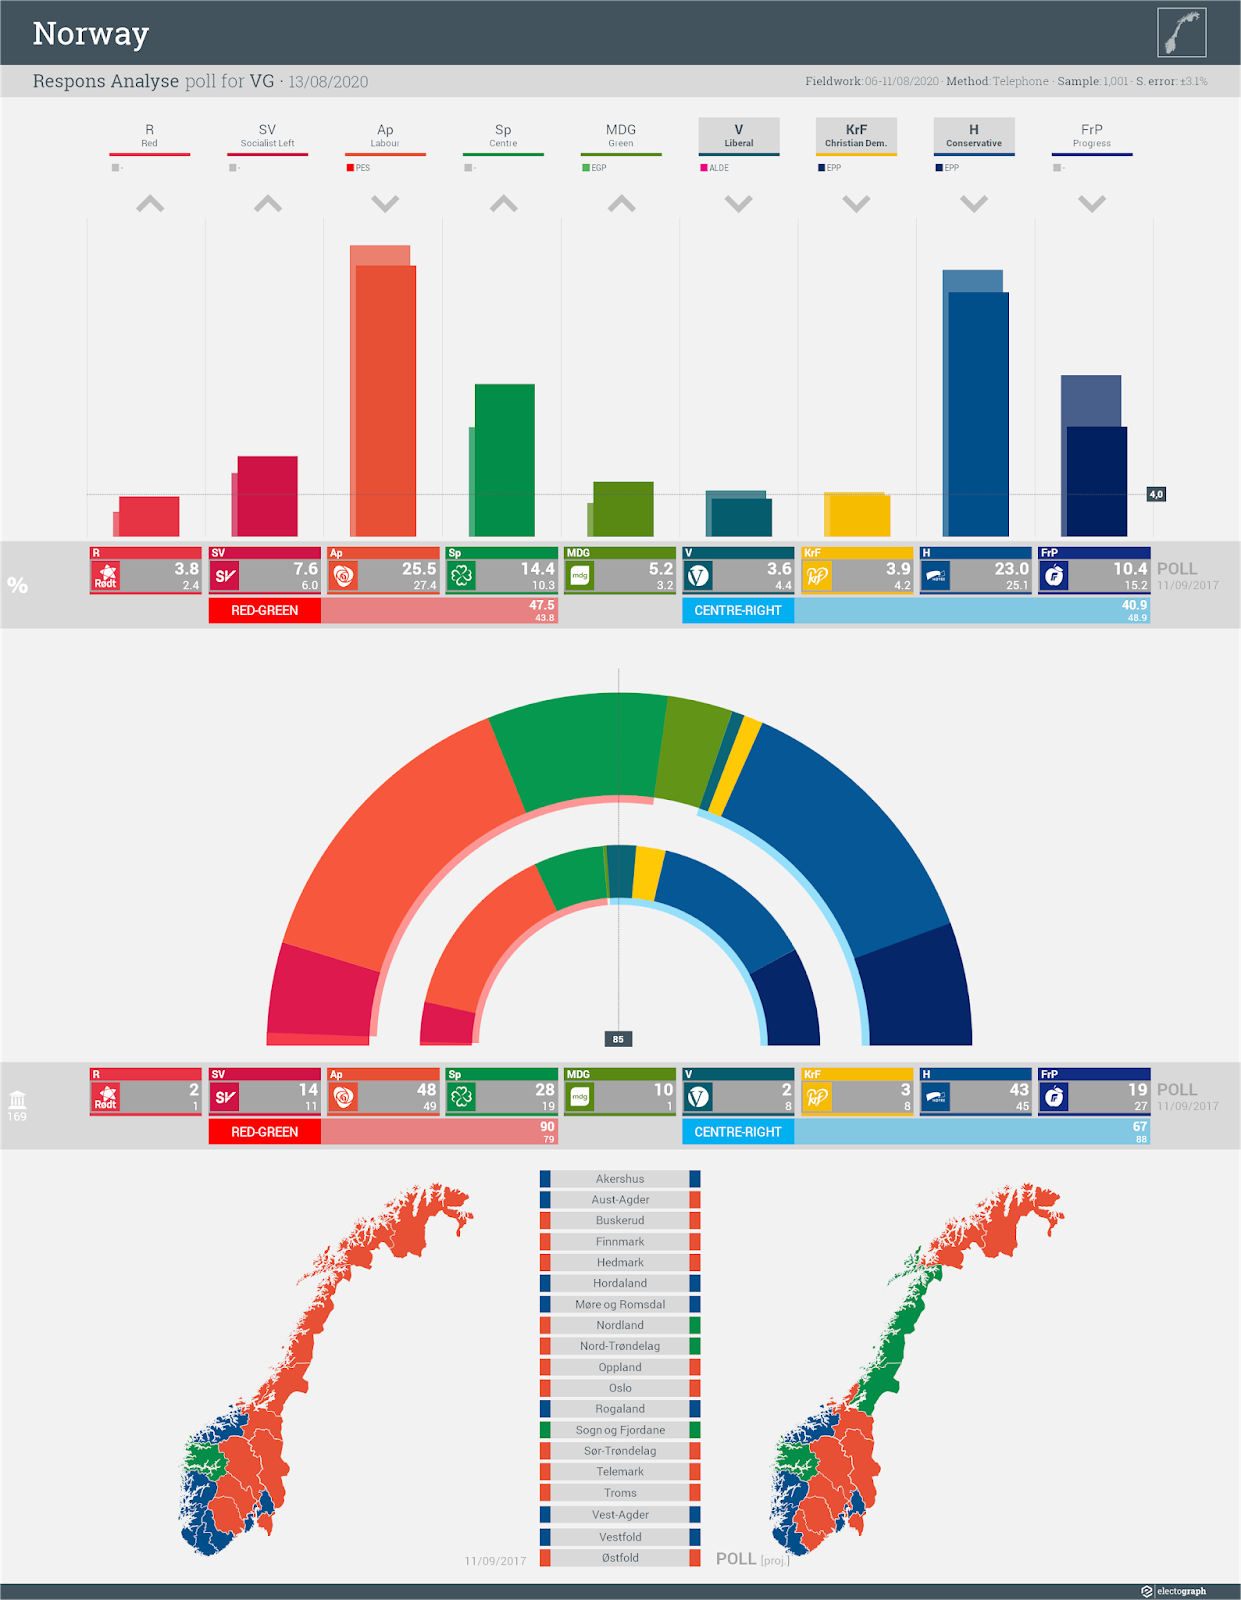 NORWAY: Respons Analyse poll chart for VG, 13 August 2020